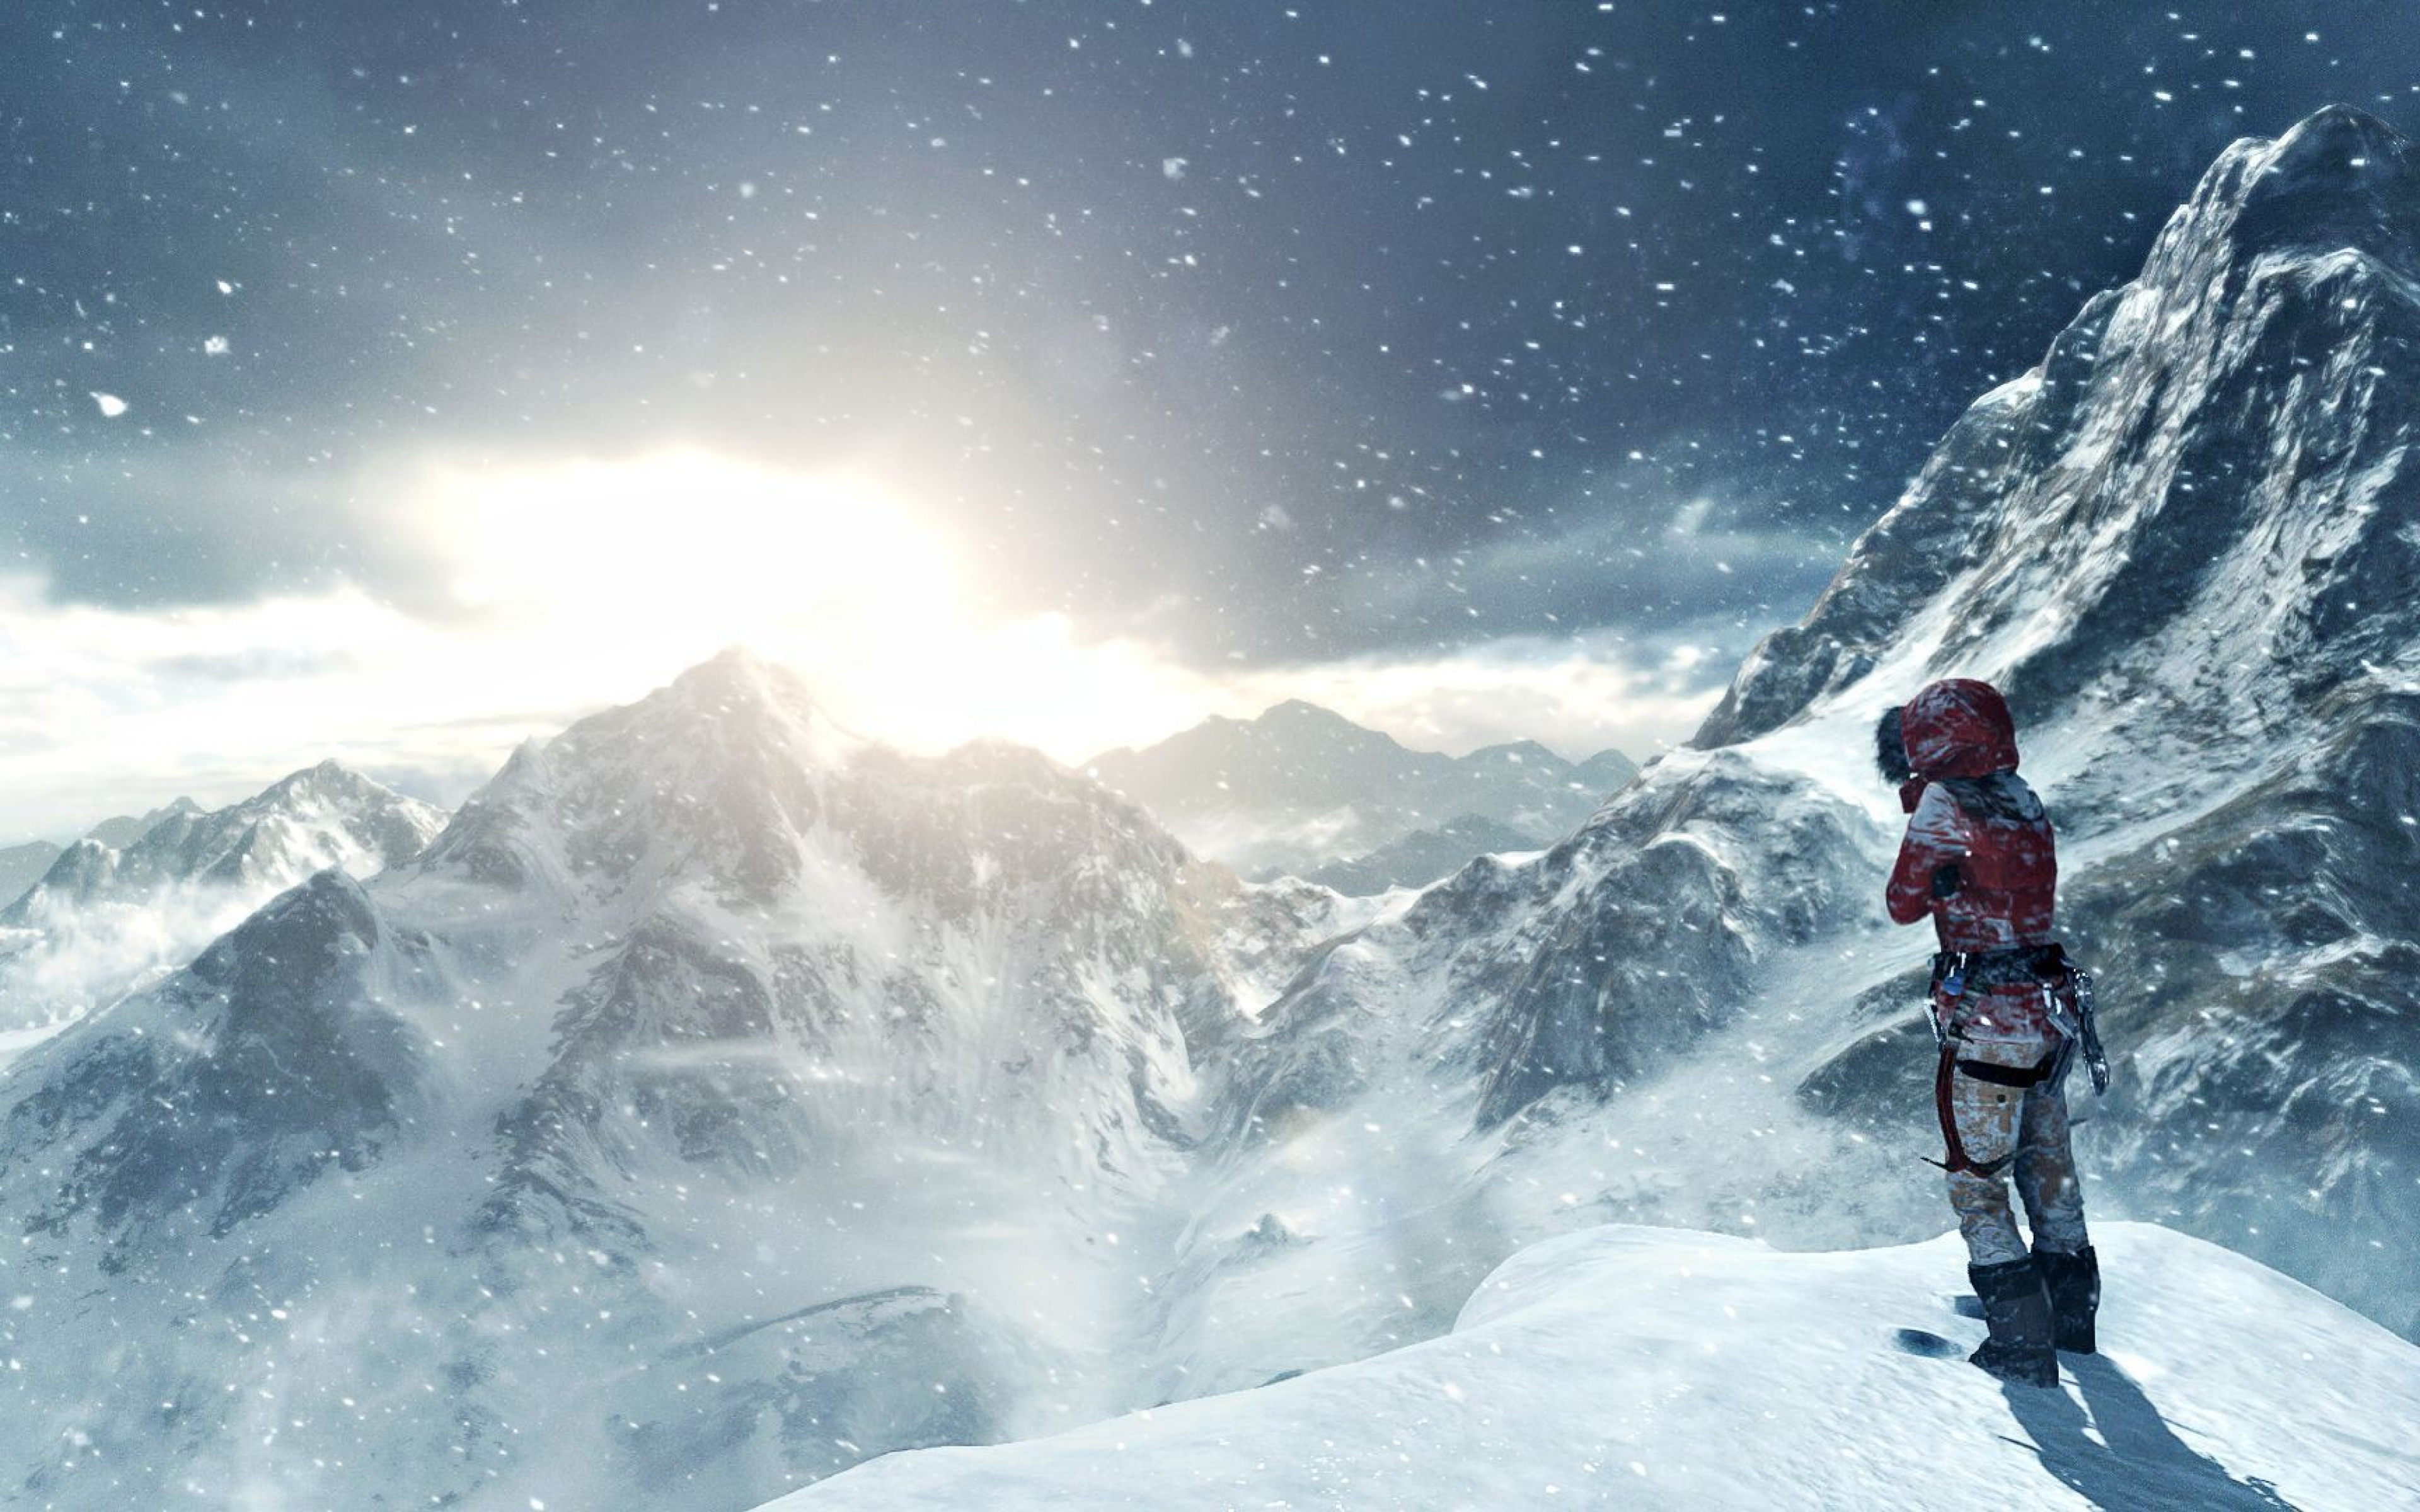 Samsung Galaxy 3d Wallpapers Free Download Download Rise Of The Tomb Raider Wallpaper Hd Resolution